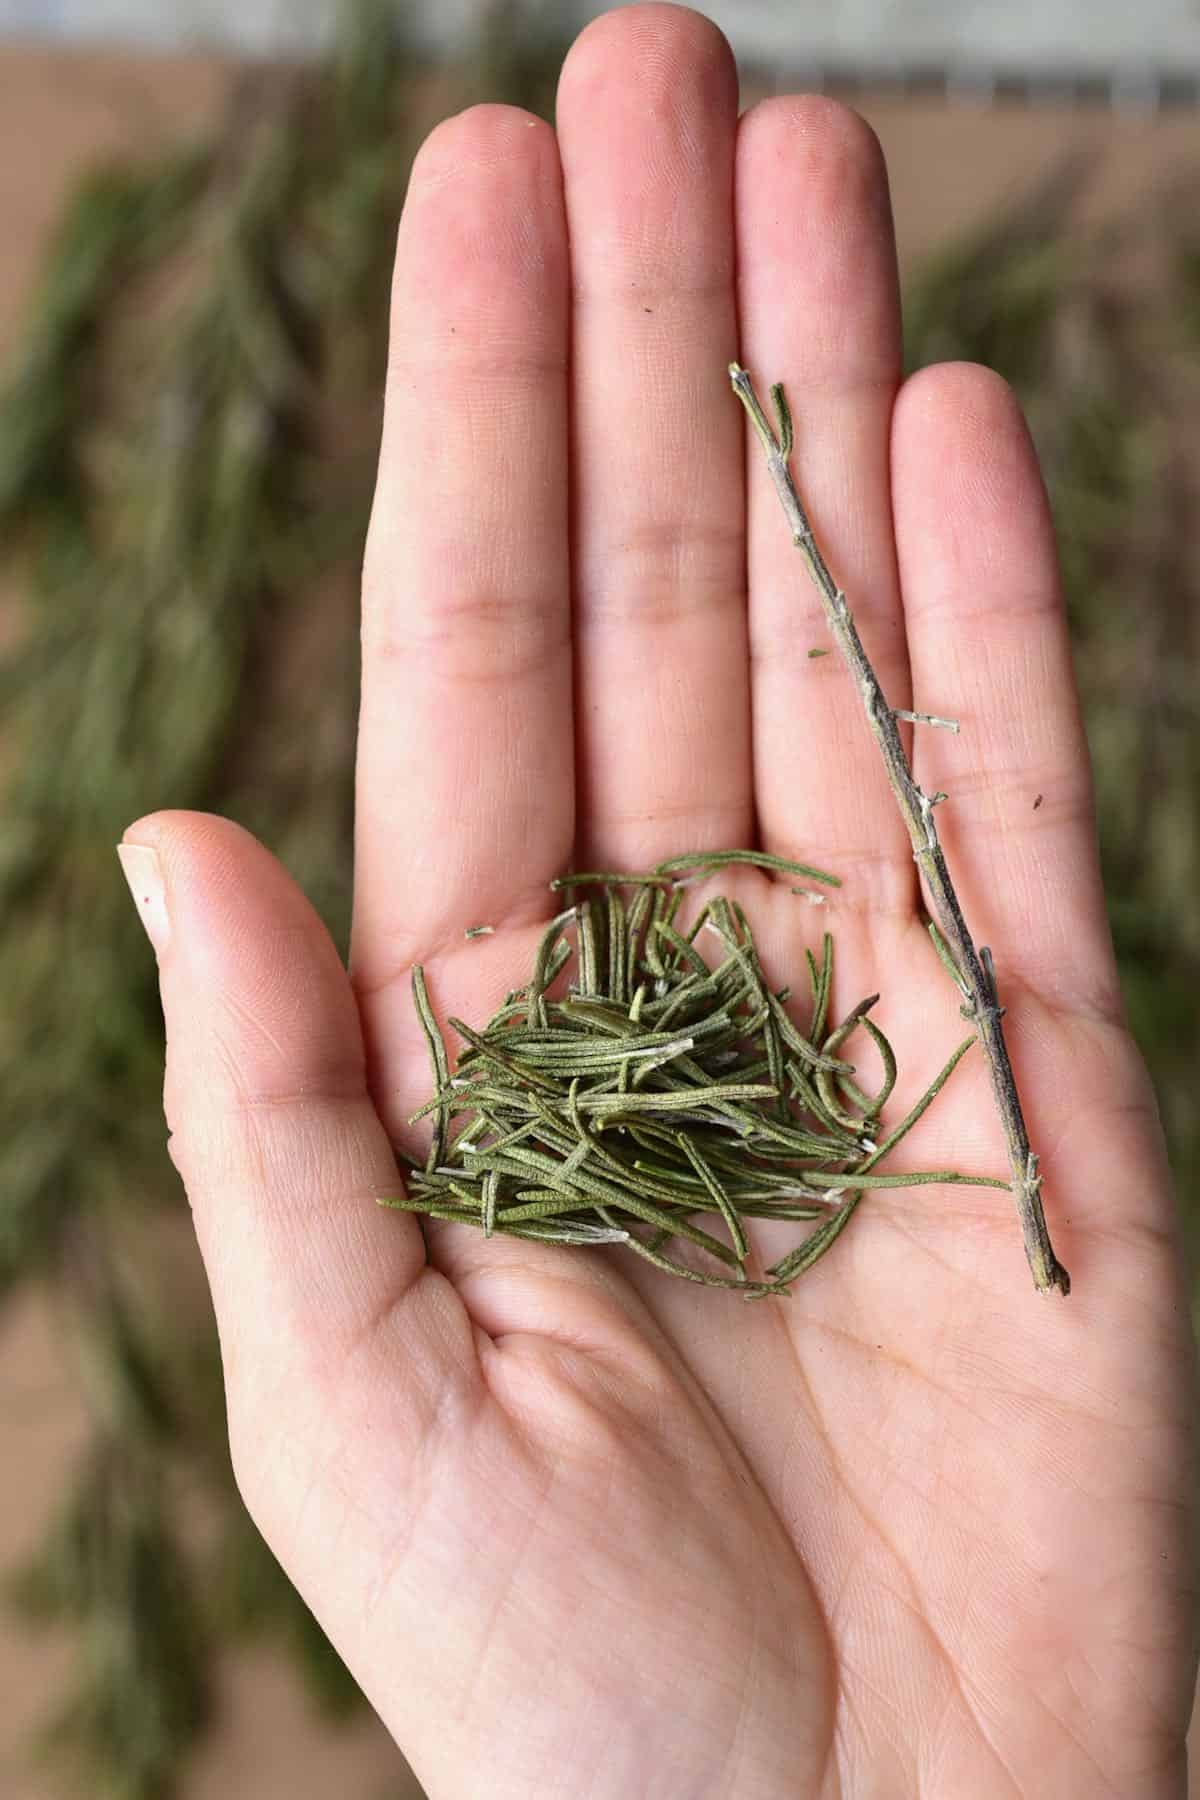 A hand holding dried rosemary